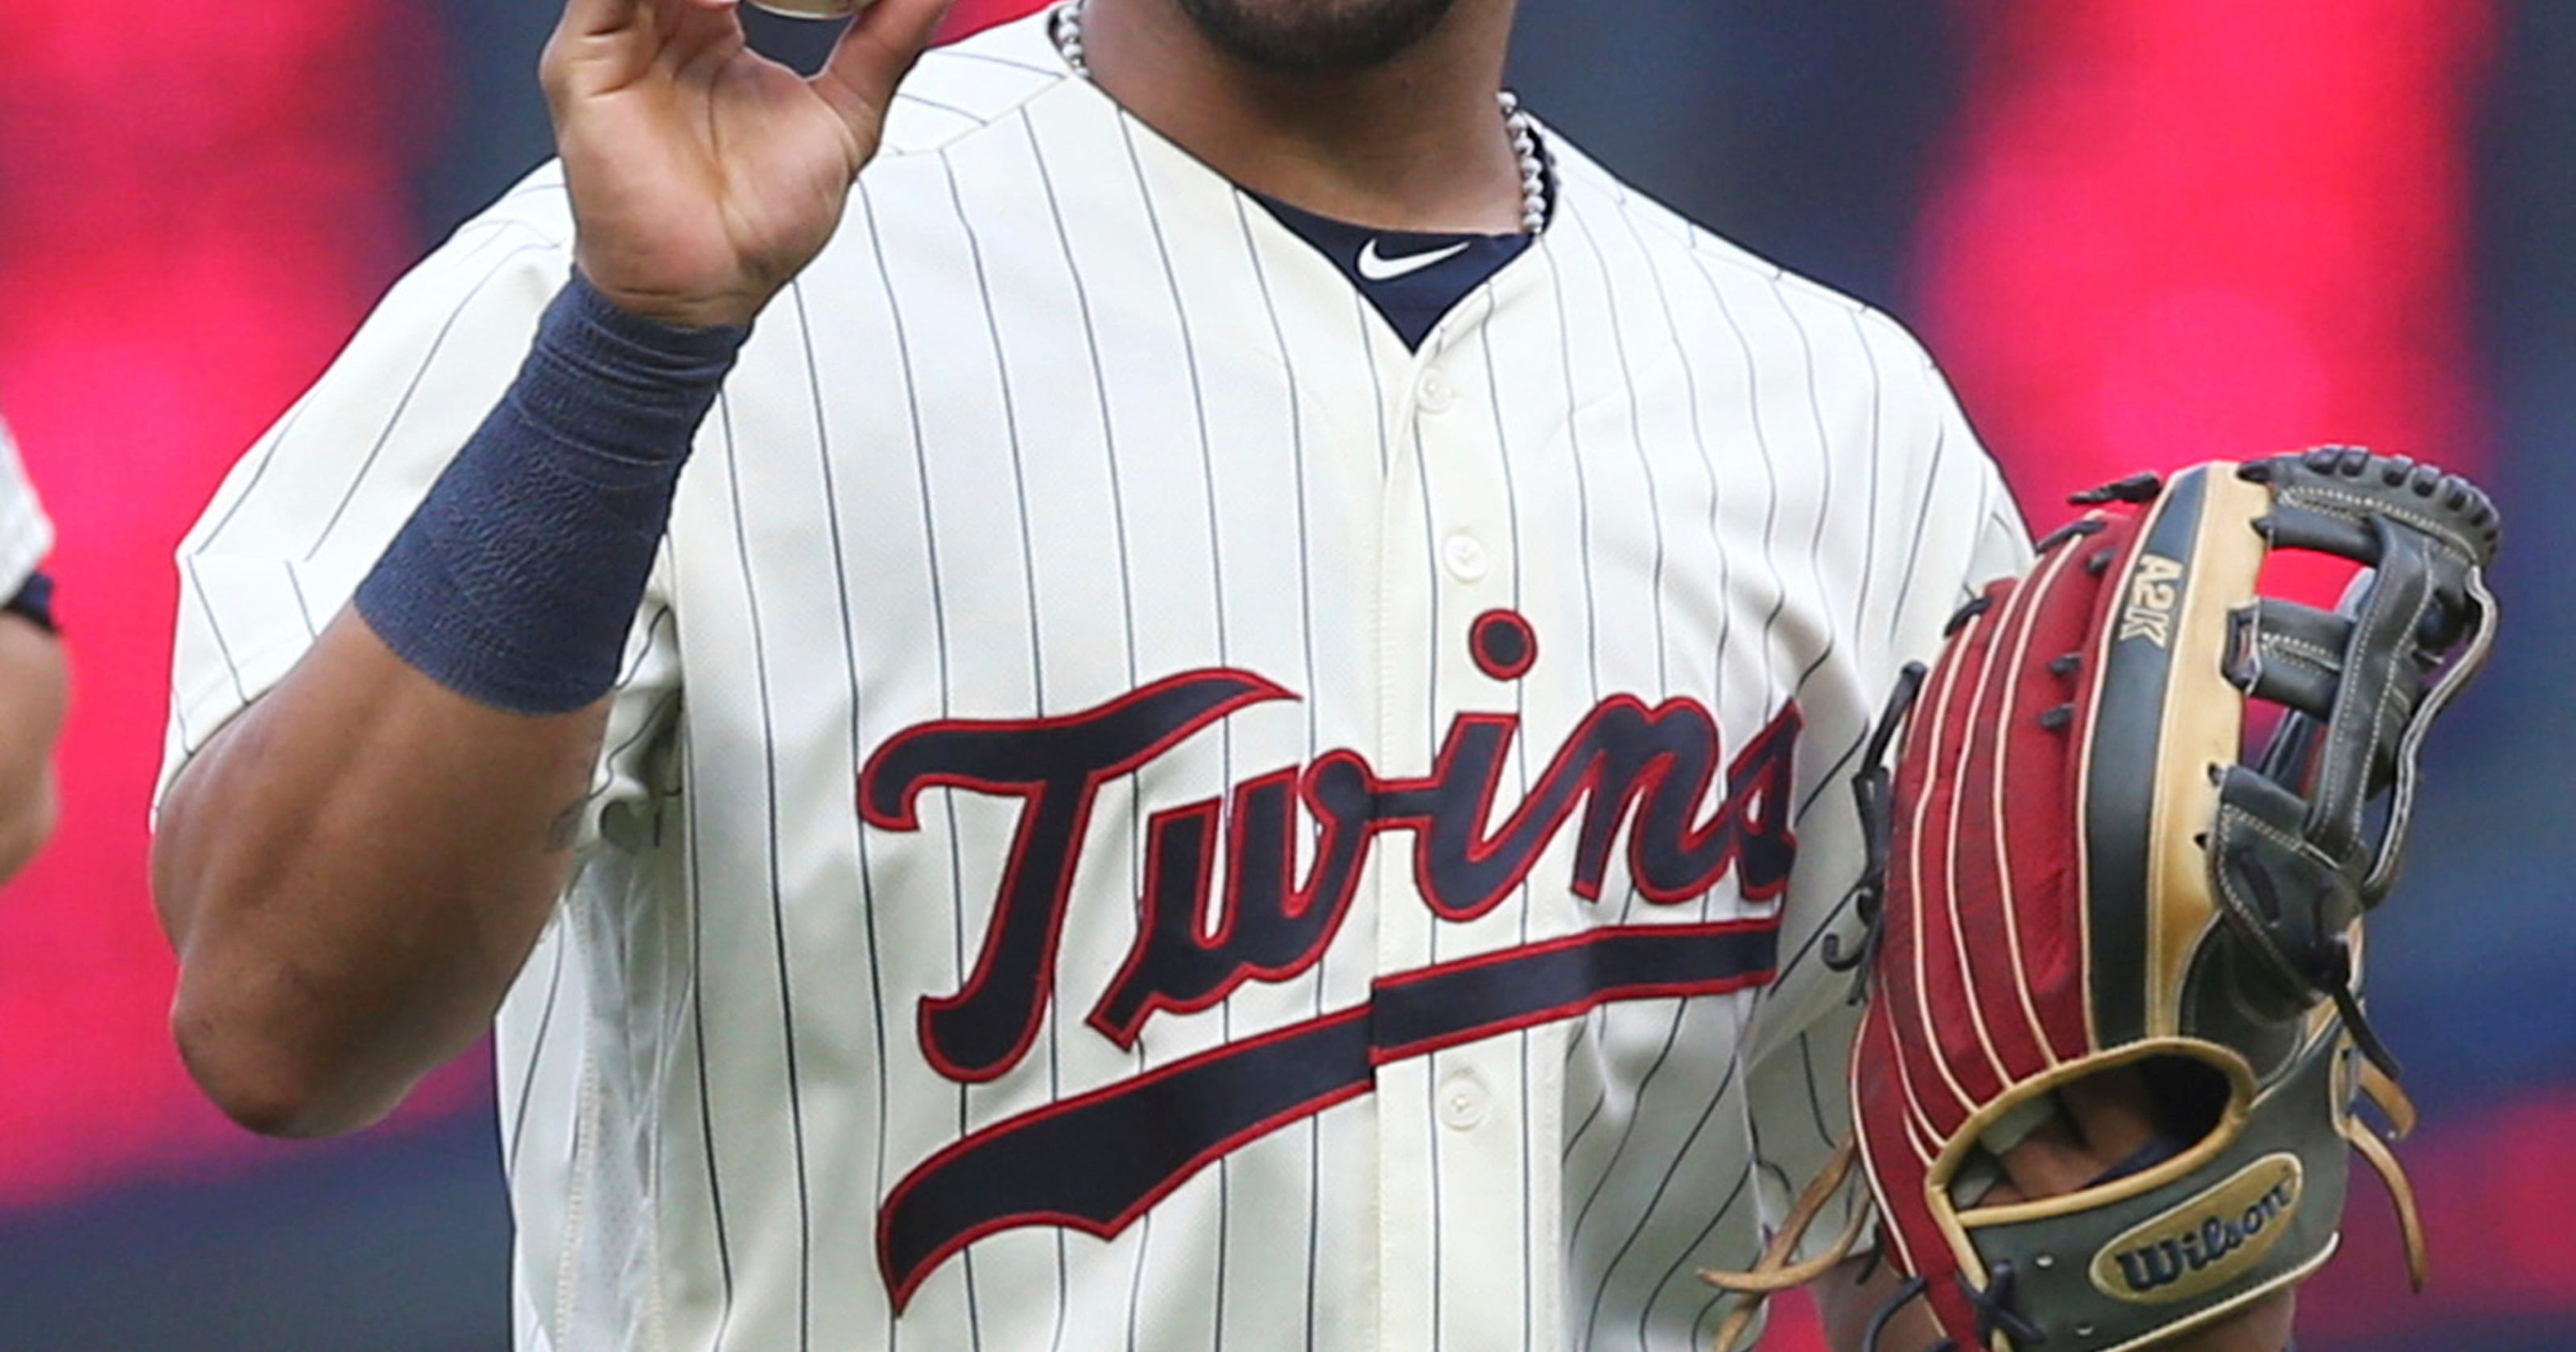 timeless design 3f1f1 190cd Recent Twins surge fueled by emerging star Eddie Rosario